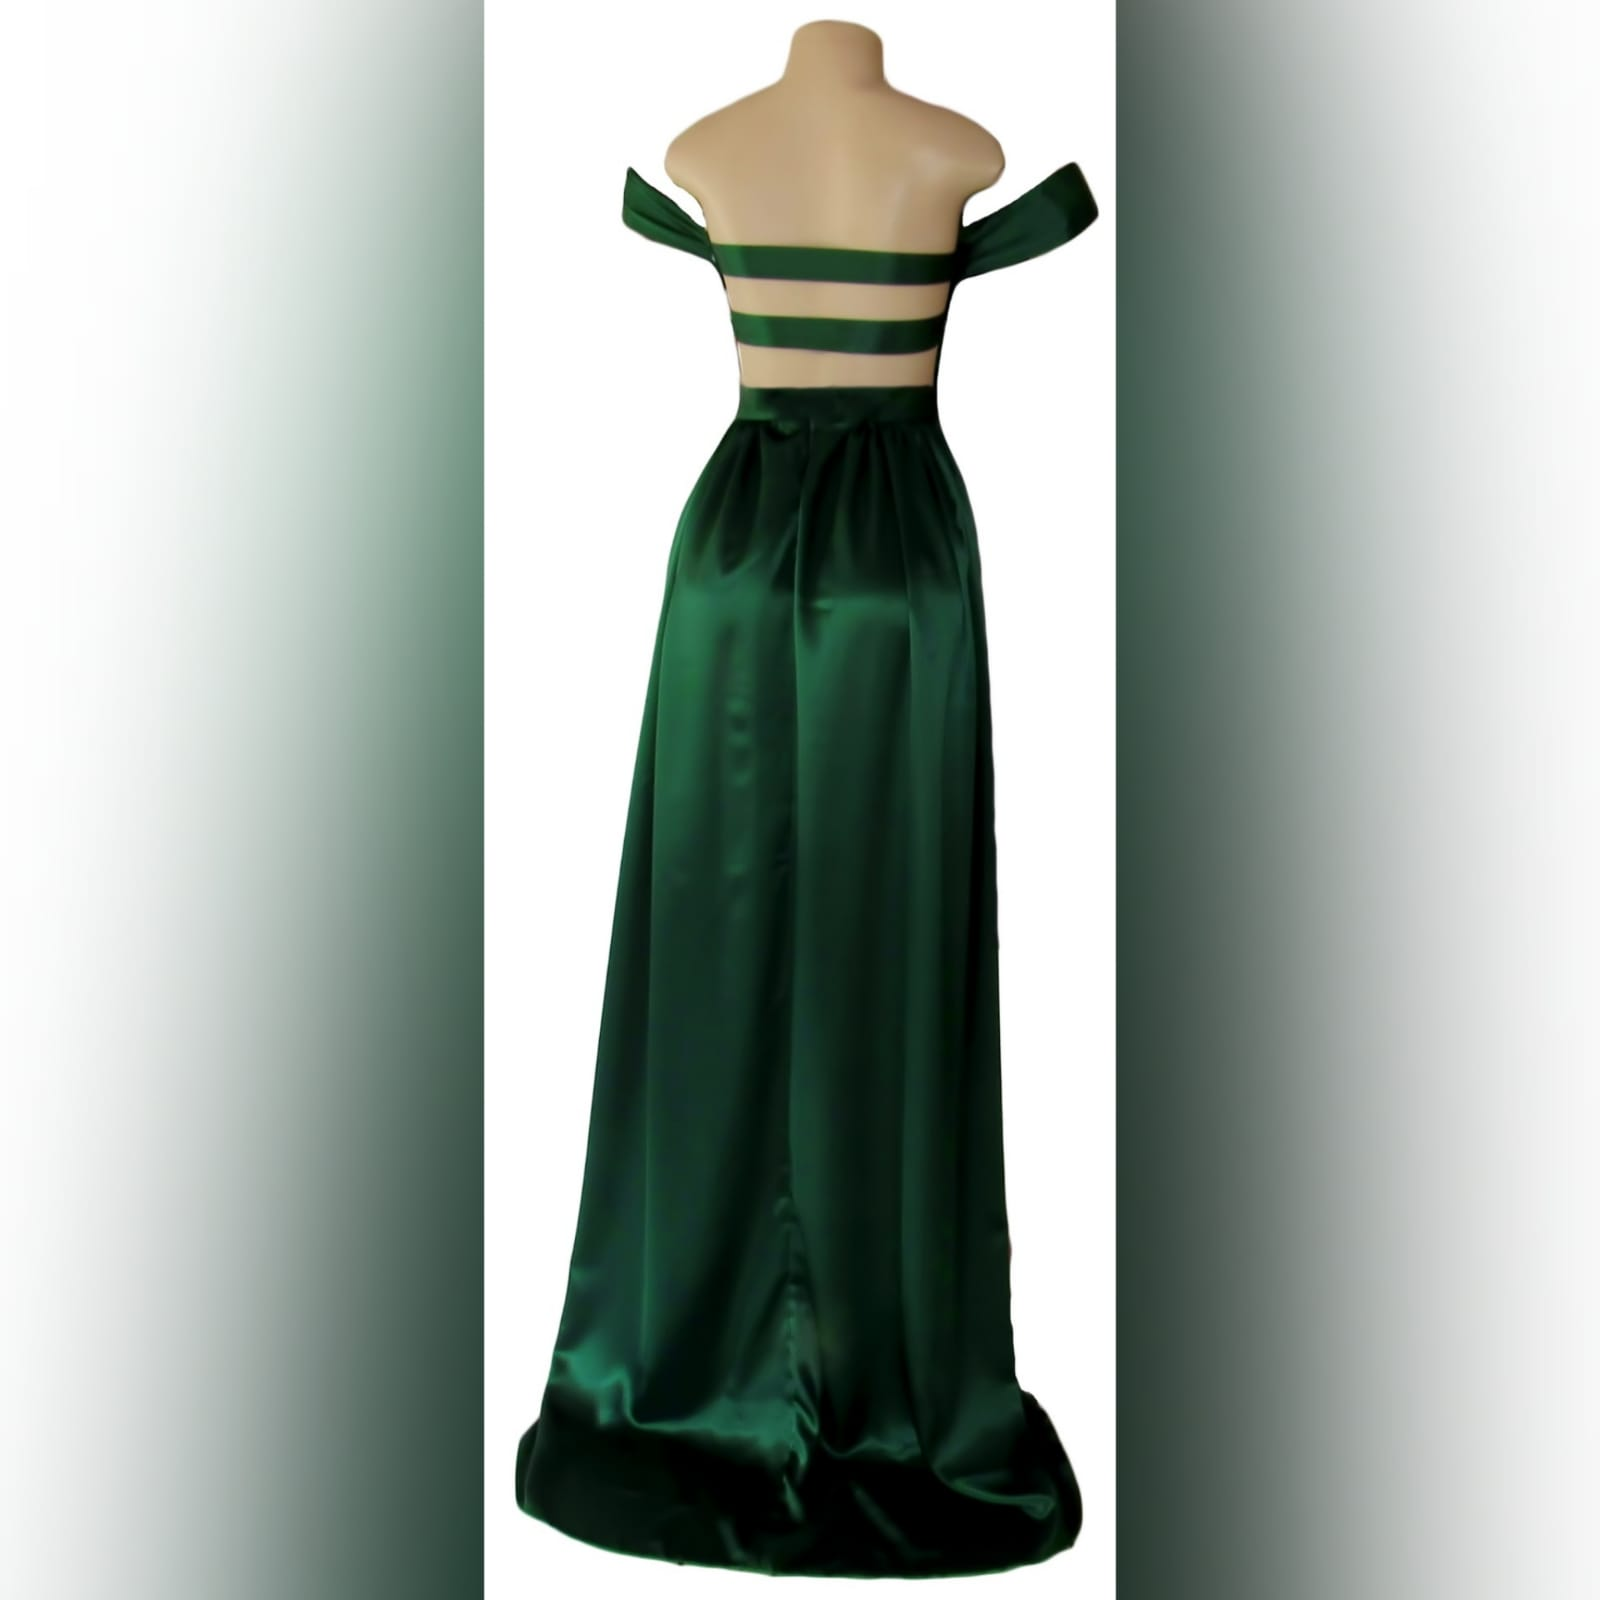 Emerald green satin flowy formal dress 4 emerald green satin off shoulder flowy formal dress, with a pleated bodice off shoulder short sleeves, naked back detailed with straps. A crossed slit and a small train.